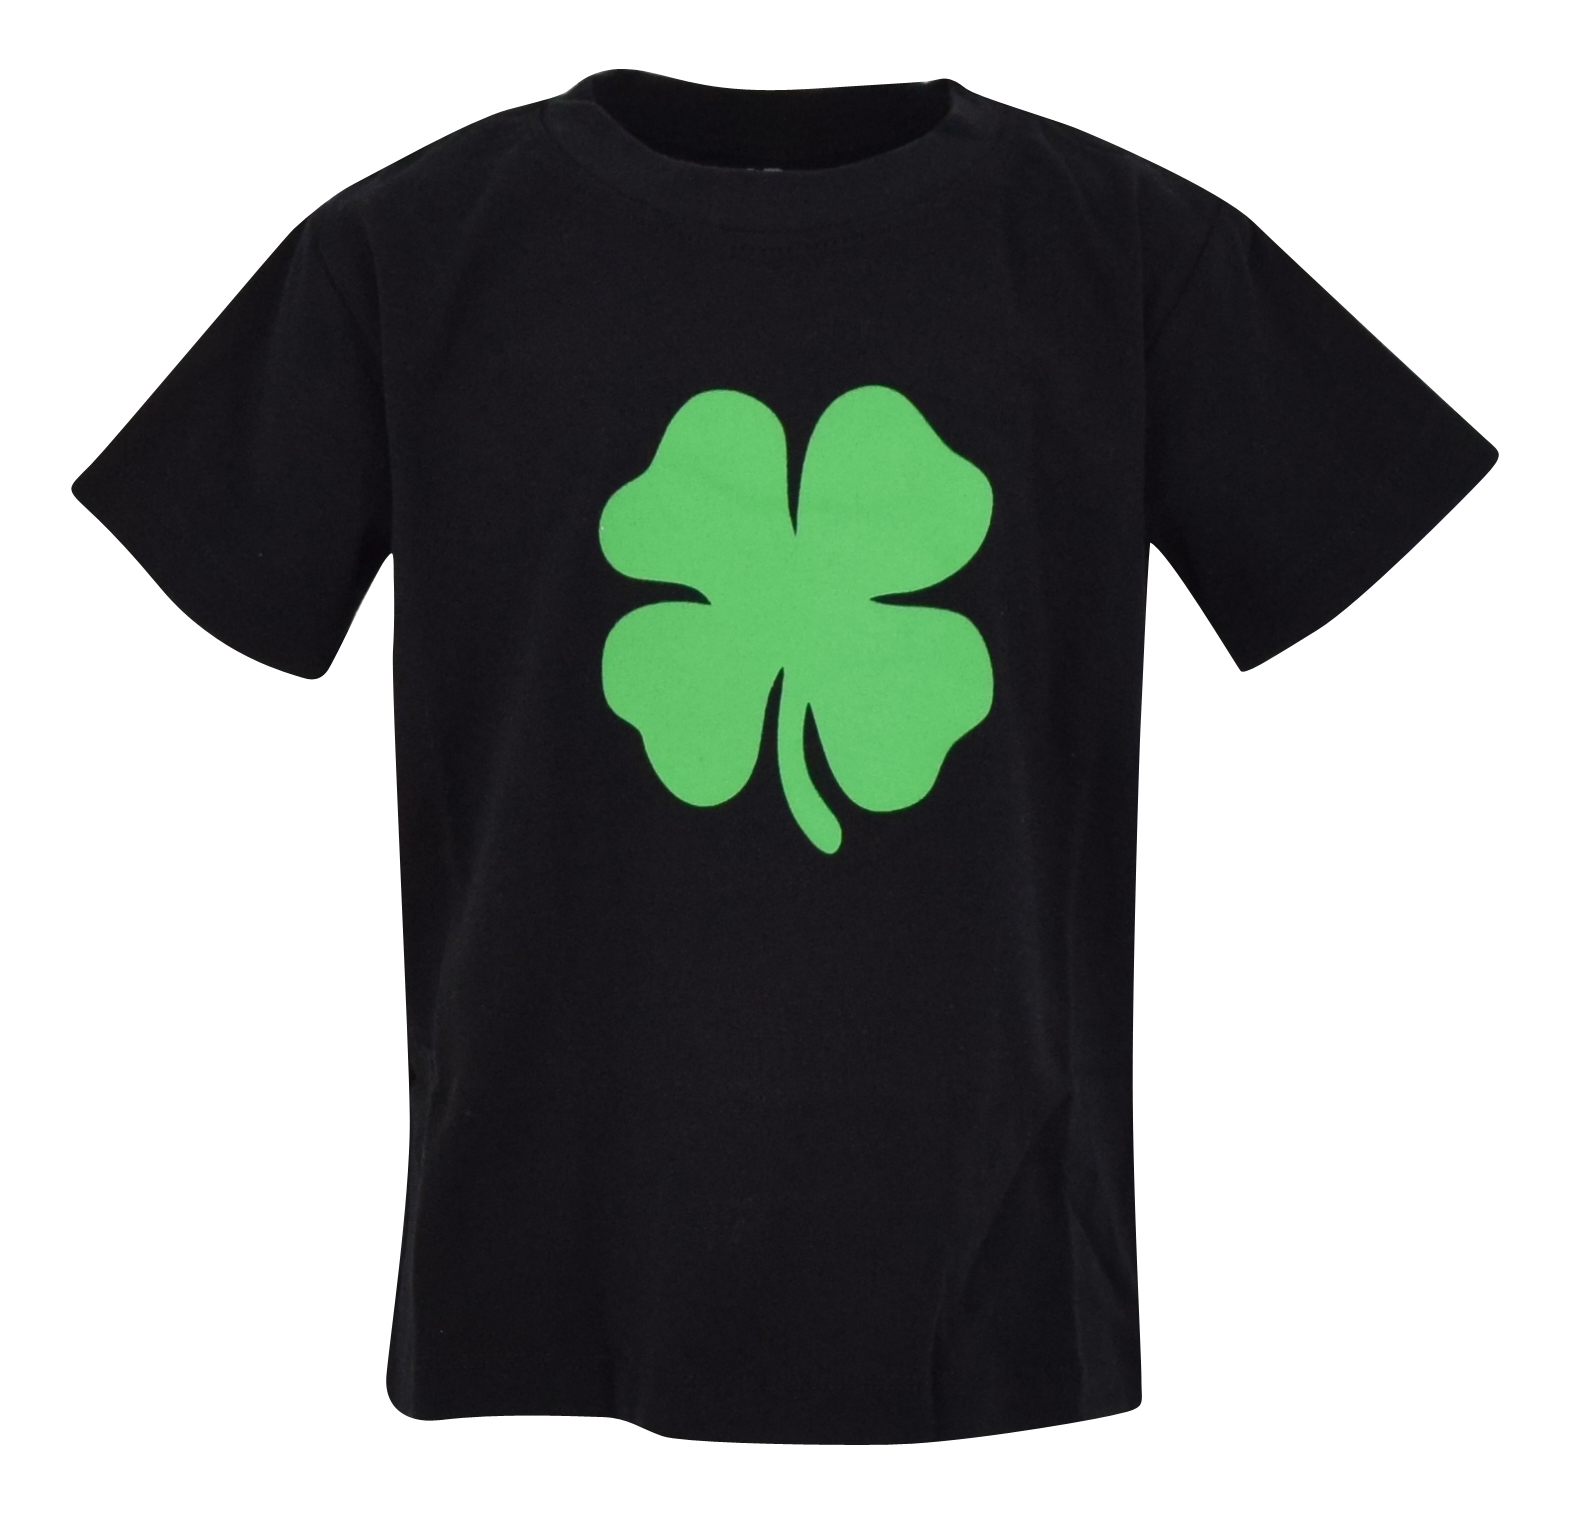 Boys-2-Piece-ST-Patricks-Day-Clover-Outfit-2t-3t-4t-5-6-7-8-Toddler-Kids-Clothes thumbnail 47